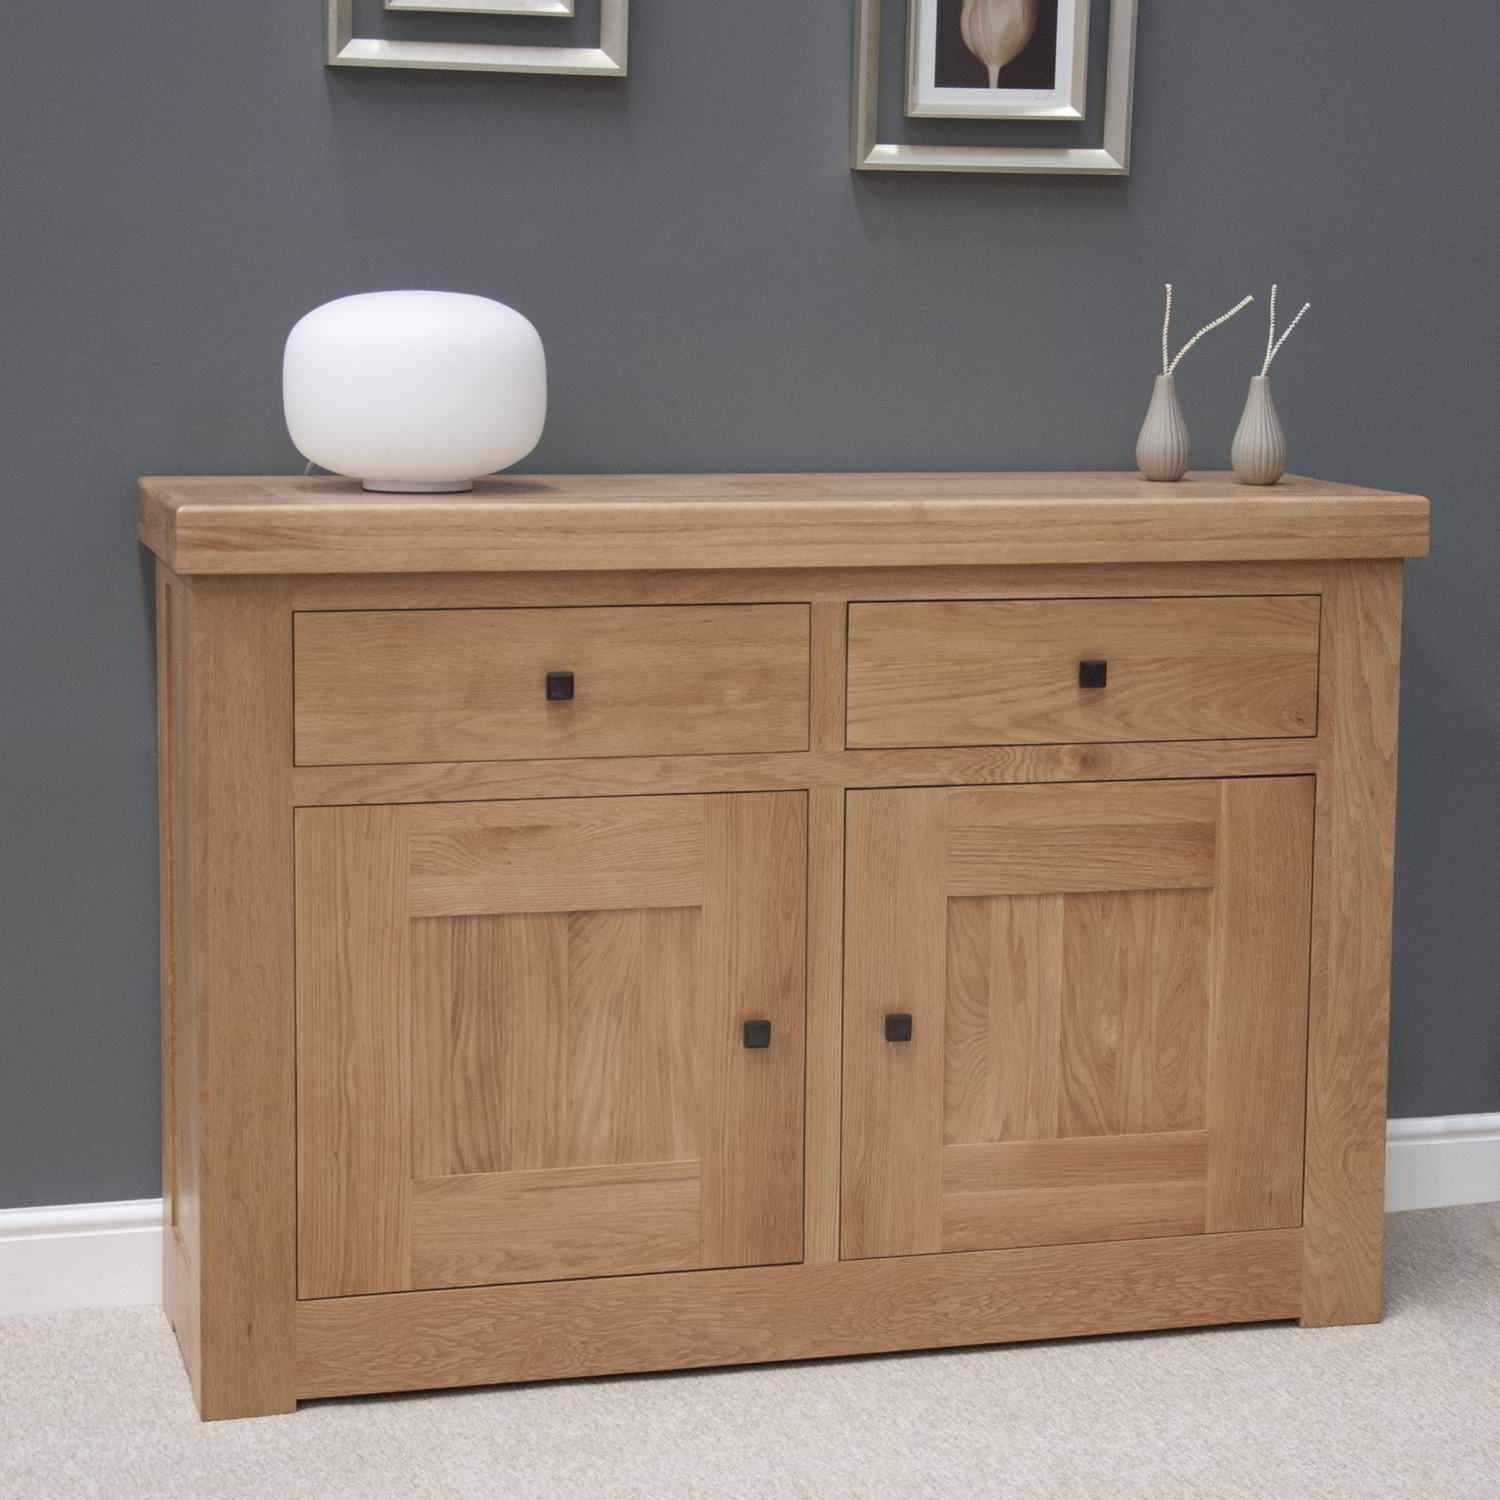 Belgrave Solid Premium Oak Living Dining Room Furniture Small Storage  Sideboard Part 13